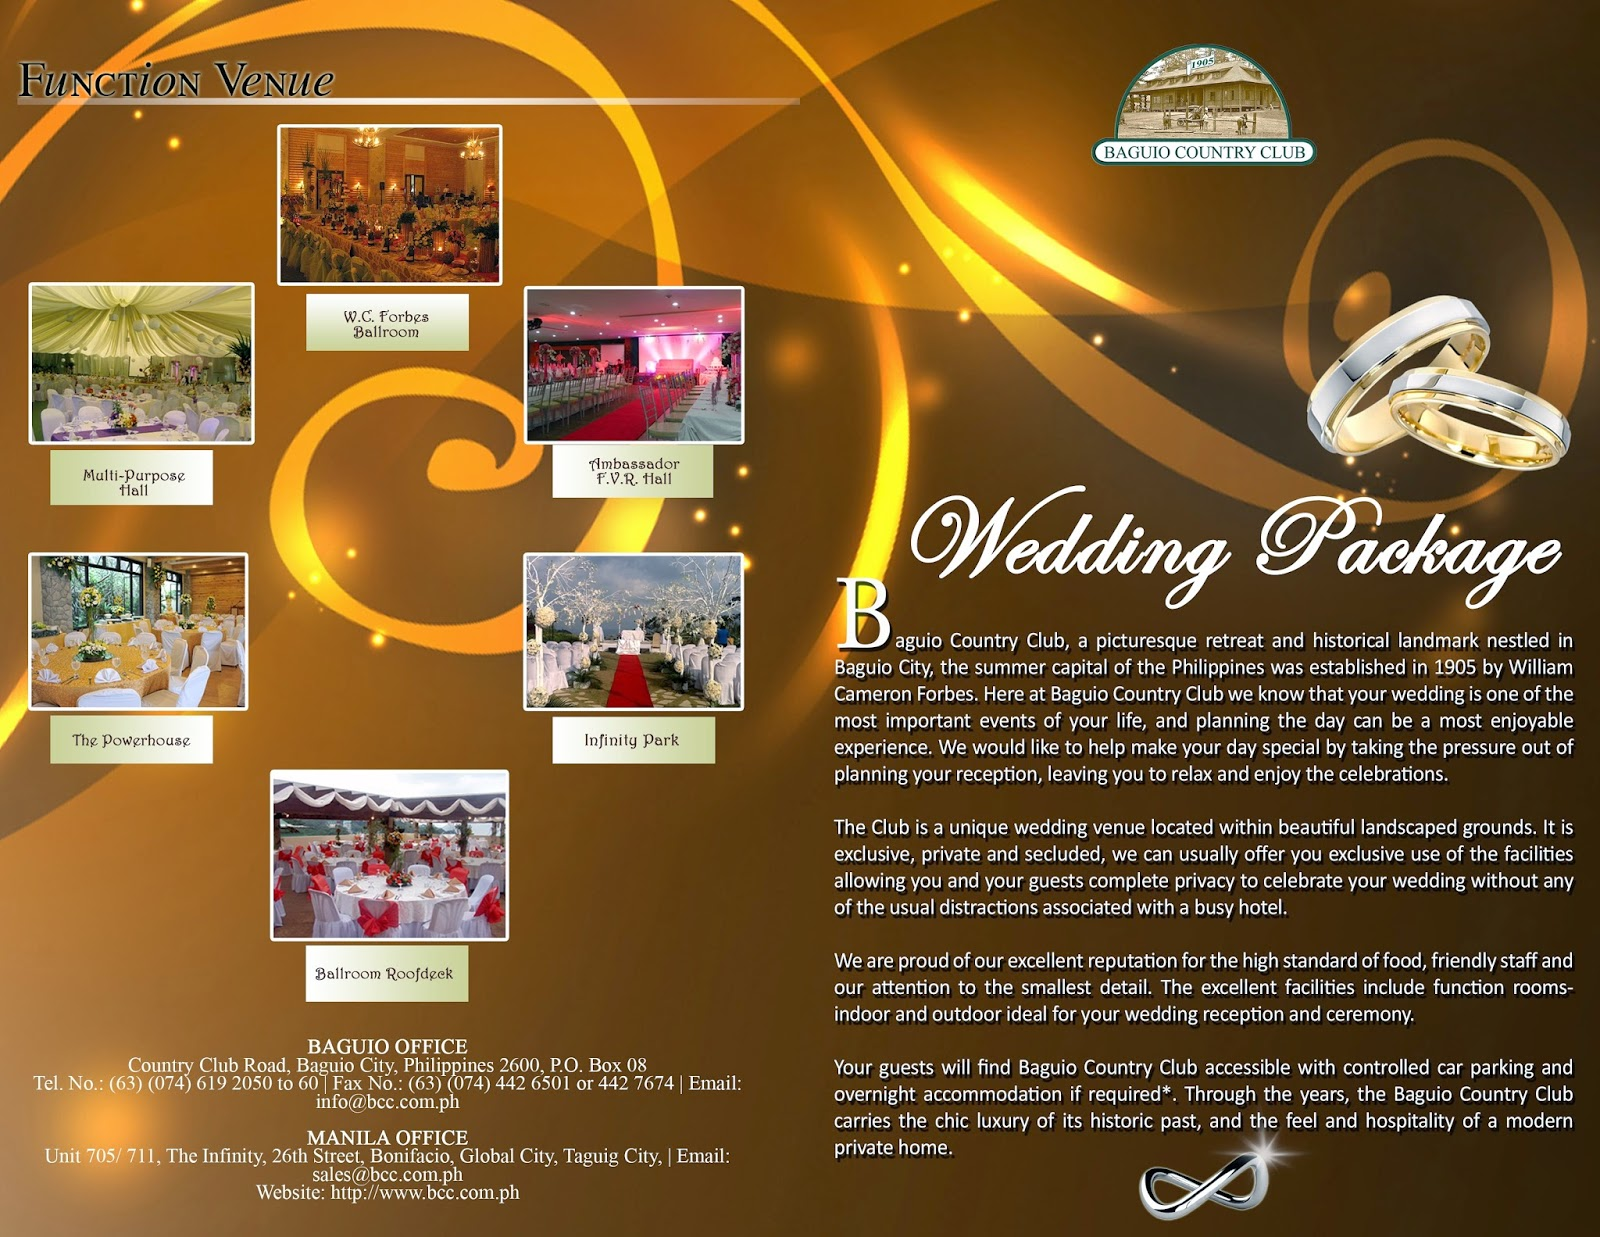 Latest Bcc And I Do Wedding Package